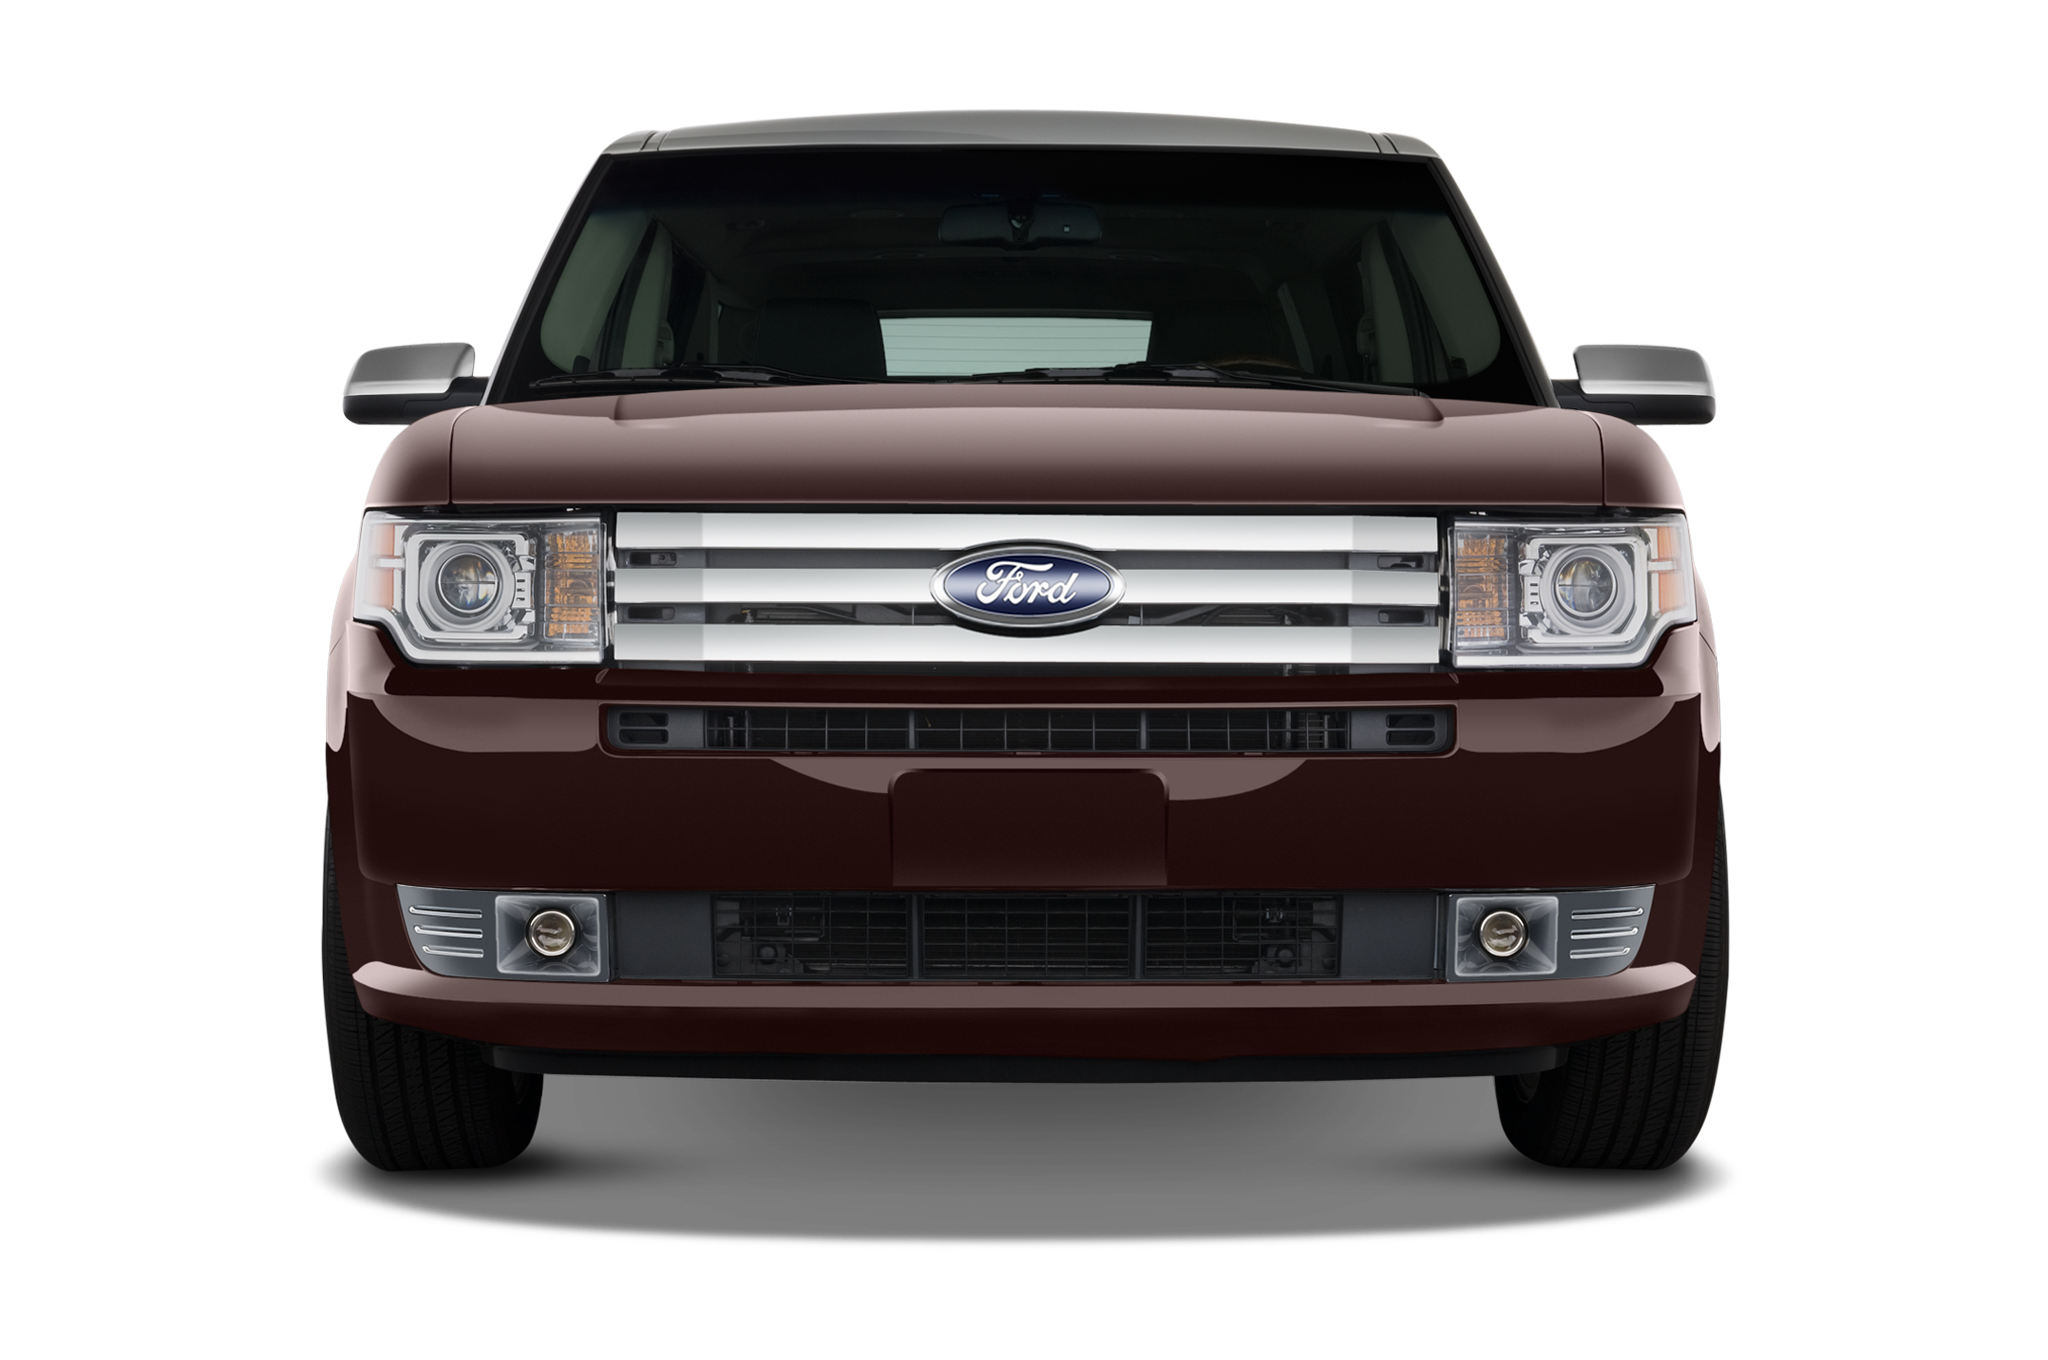 2010 Ford Flex Ecoboost Towing Capacity >> 2010 Ford Flex Ecoboost Ford Crossover Suv Review Automobile